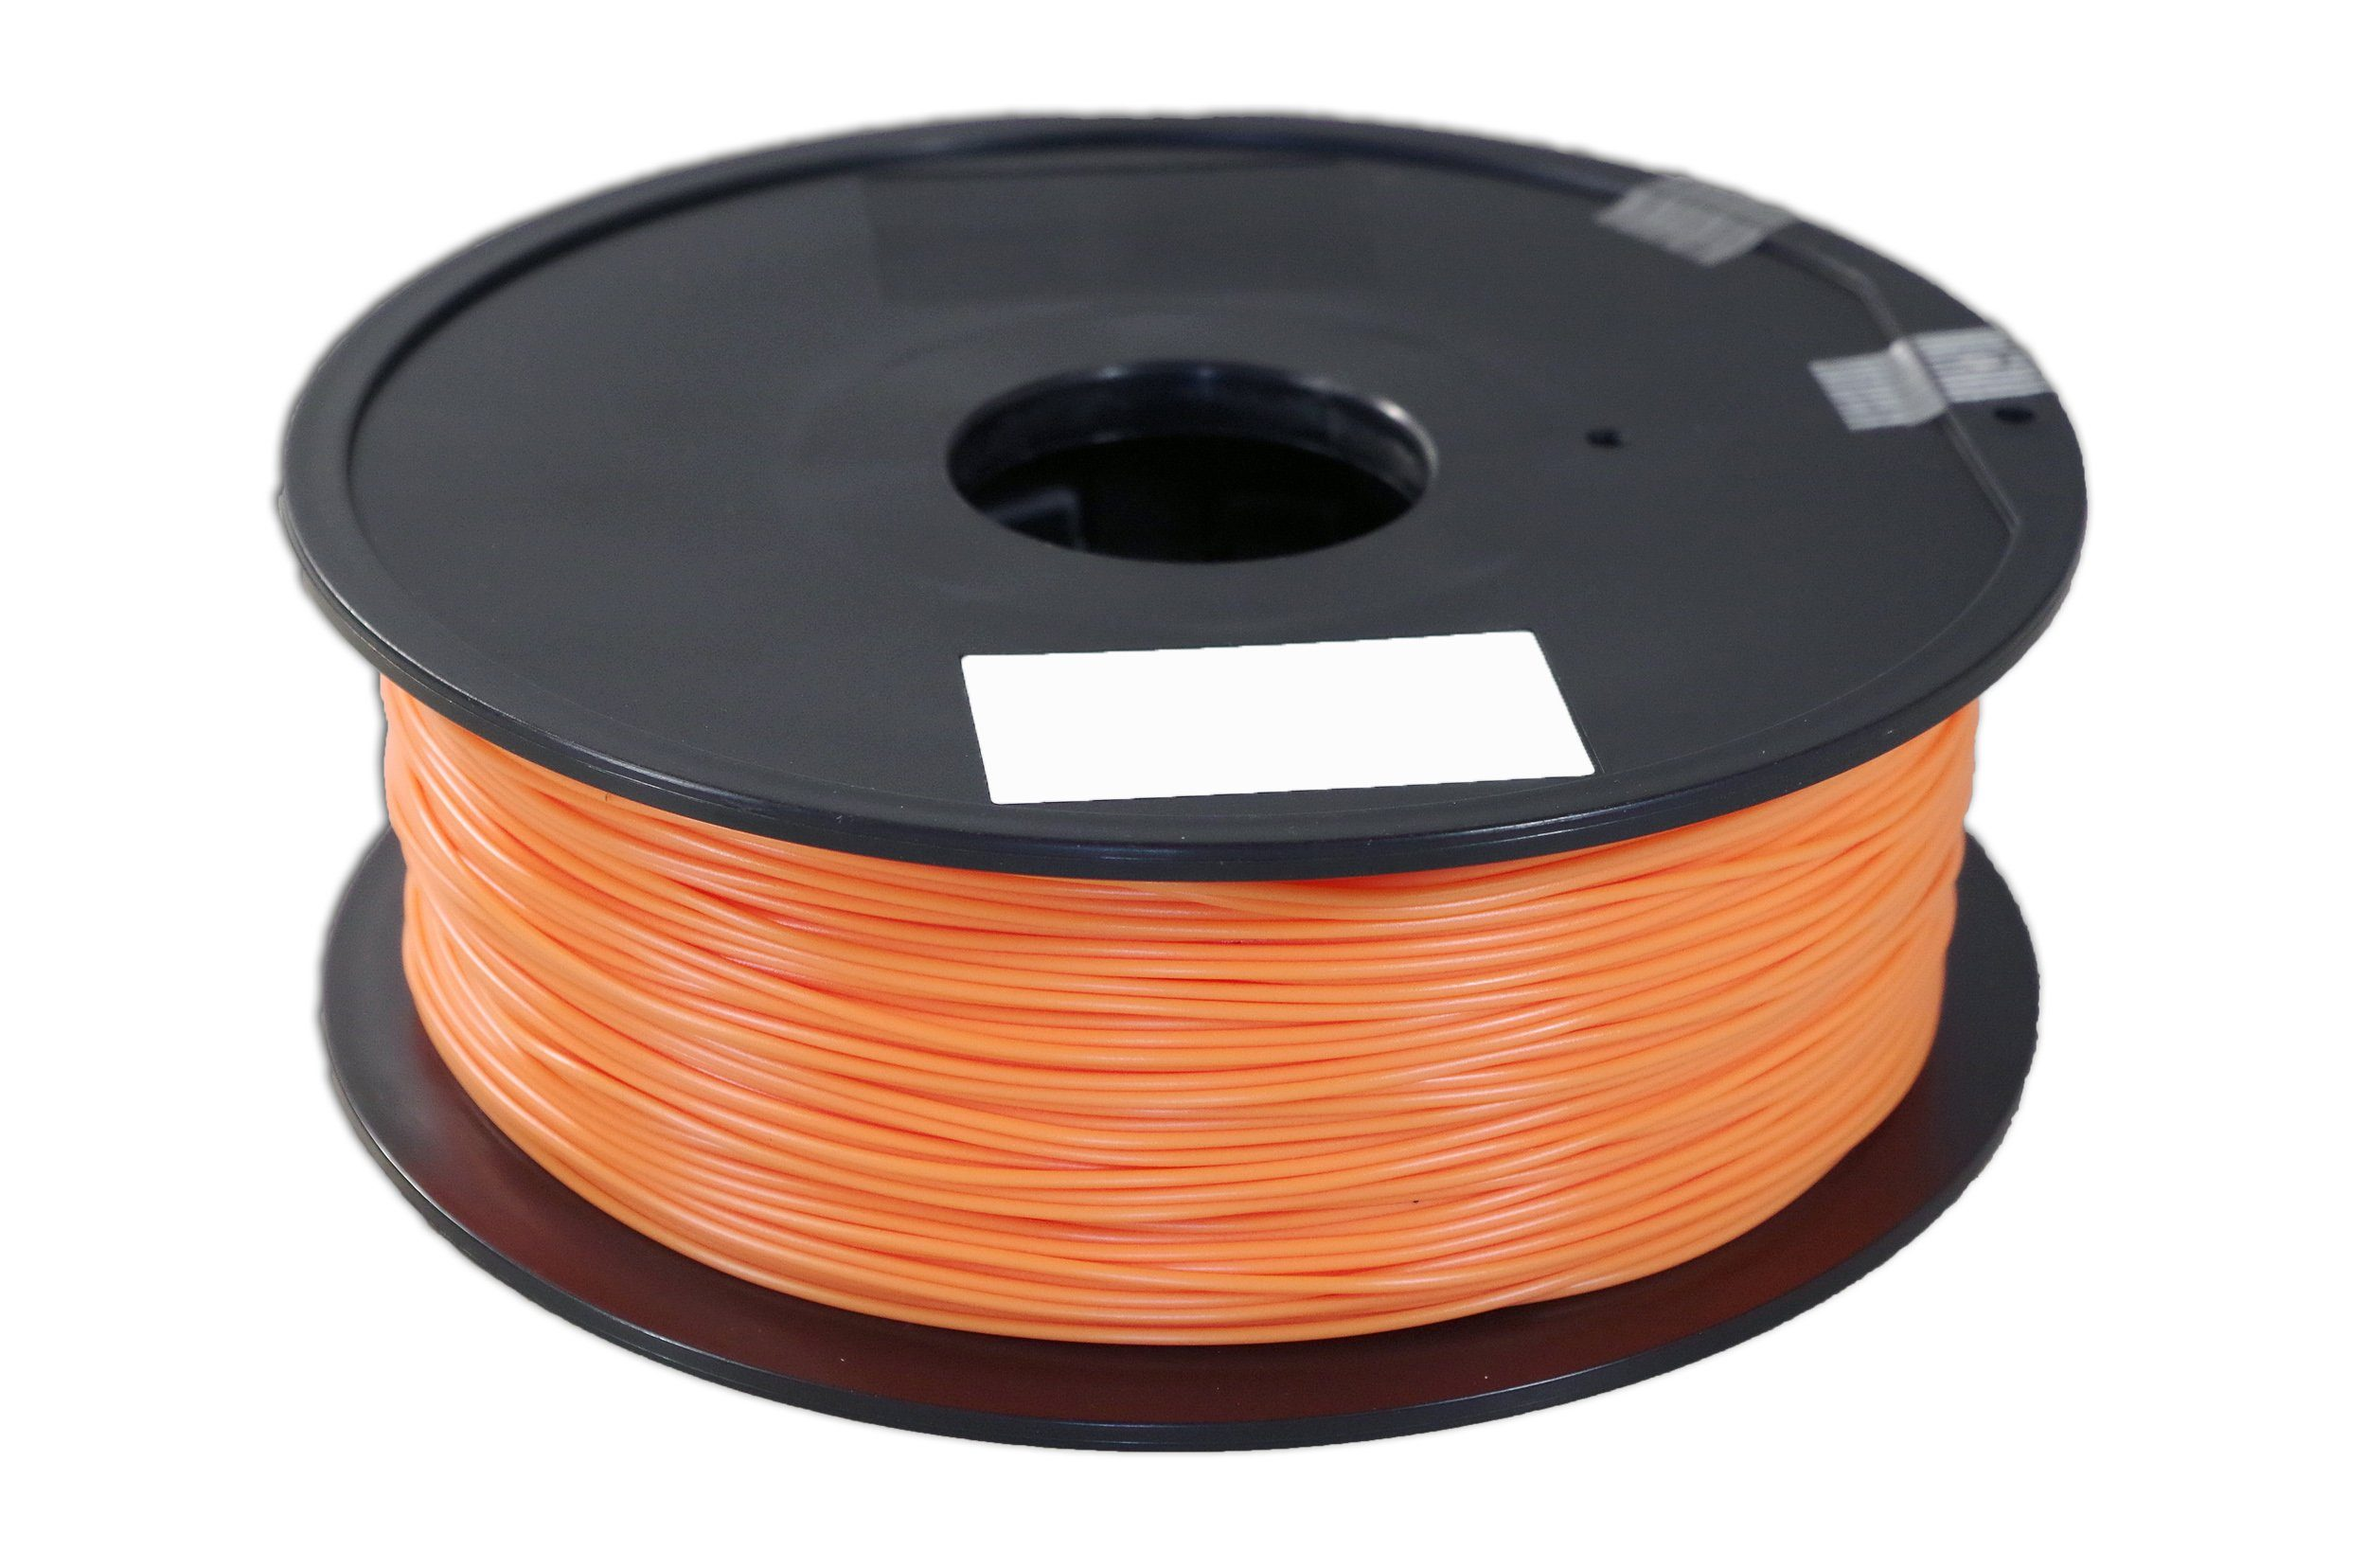 FELIXprinters Filament für 3D Drucker »PLA 1.75, orange«